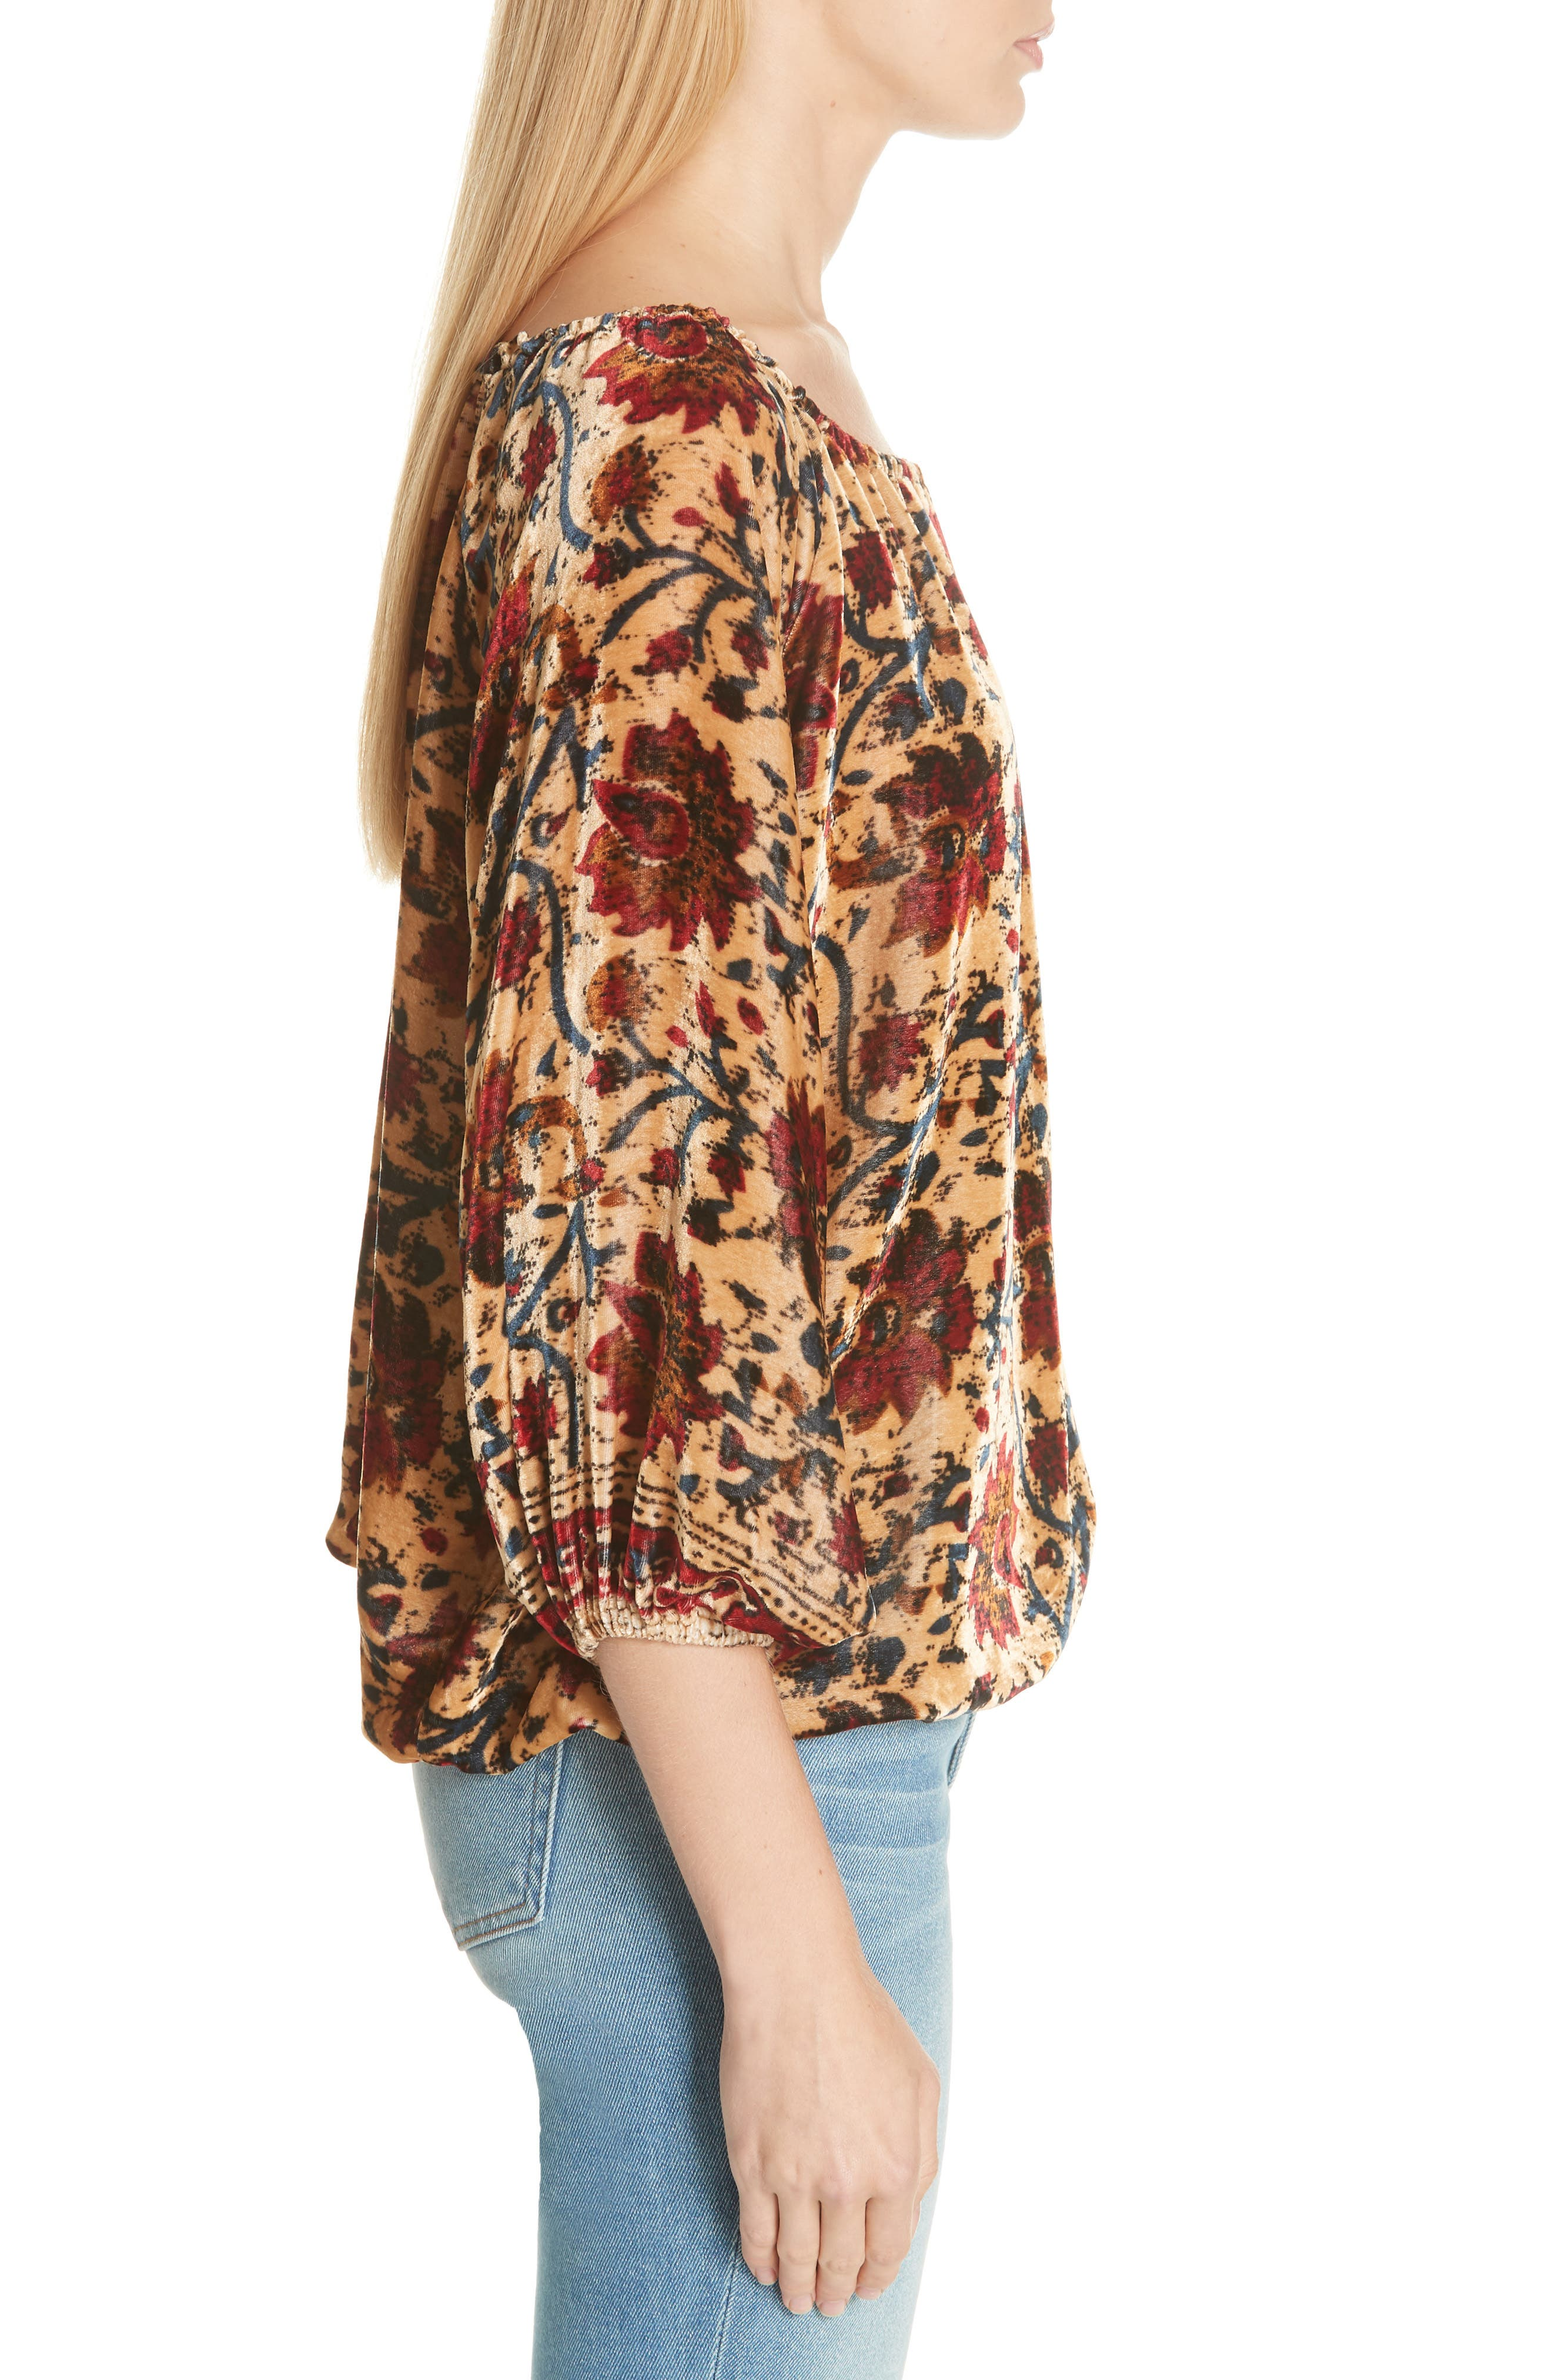 Cherie Velvet Blouse,                             Alternate thumbnail 3, color,                             FLORAL MULTI